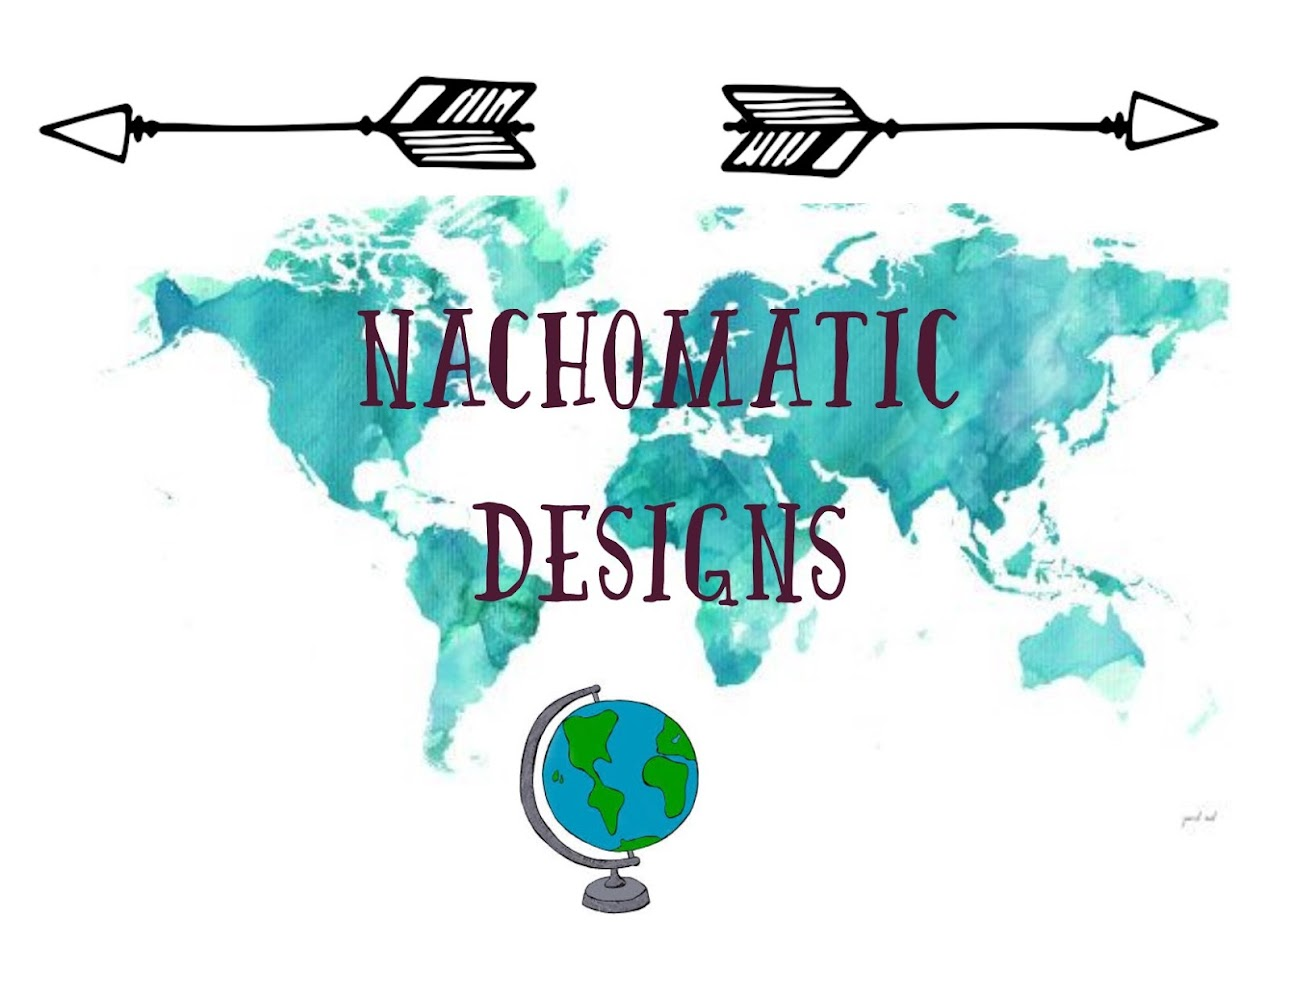 NachoMatic Designs